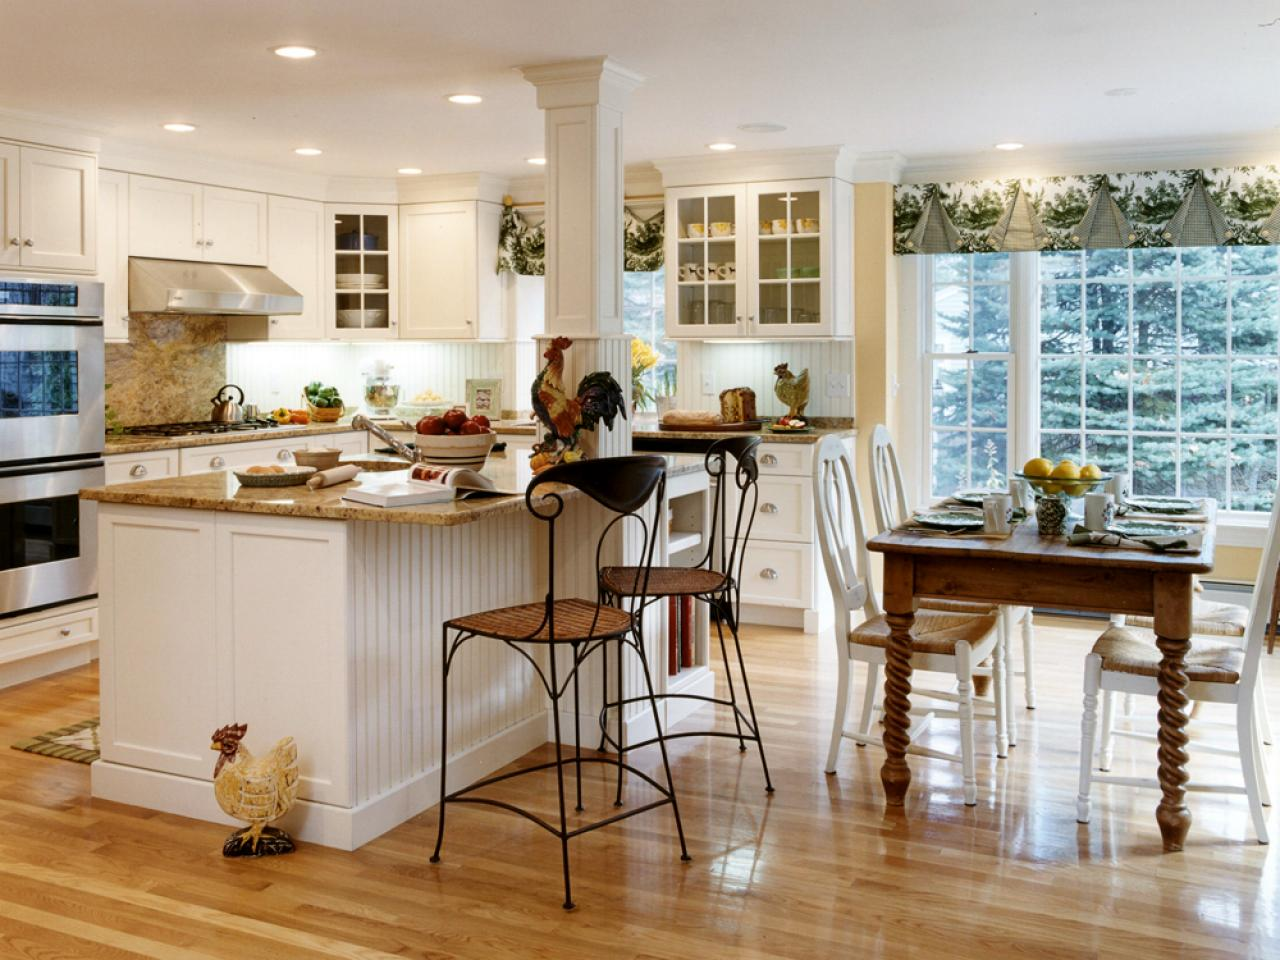 Guide to Creating a Country Kitchen   HGTV Guide to Creating a Country Kitchen